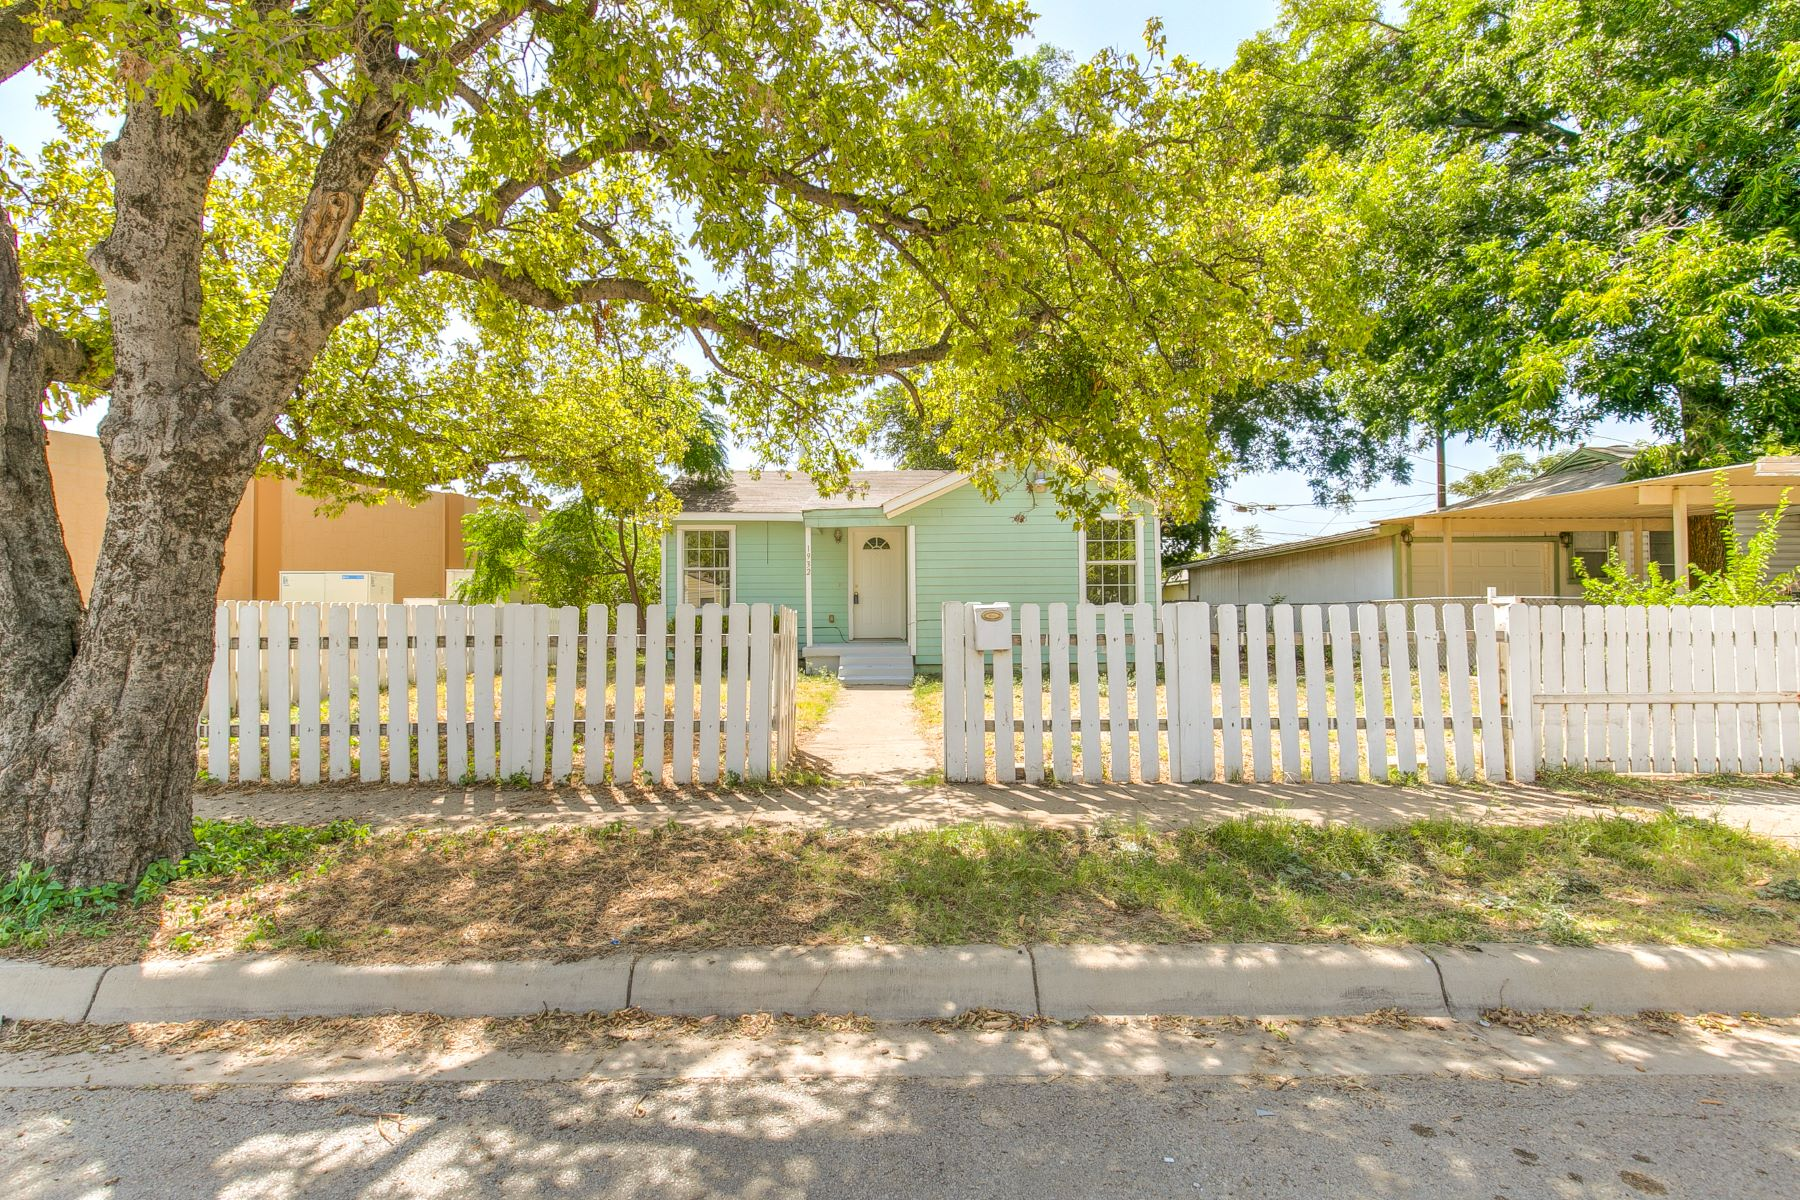 Single Family Homes for Active at Charming 2 bedroom 1 bathroom bungalow 1932 Greenfield Avenue Comfort, Texas 76102 United States